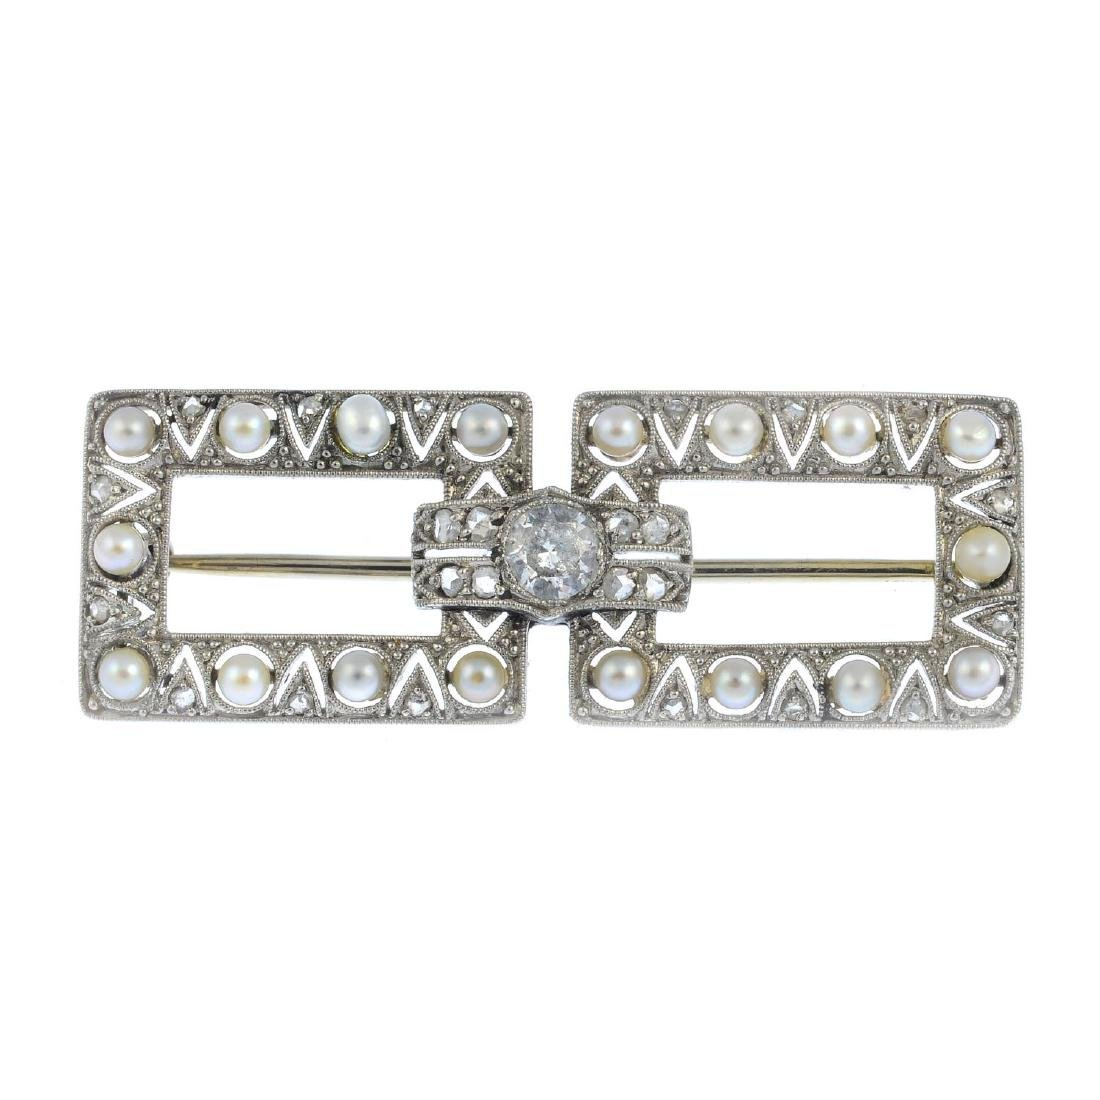 A mid 20th century seed pearl and diamond brooch.